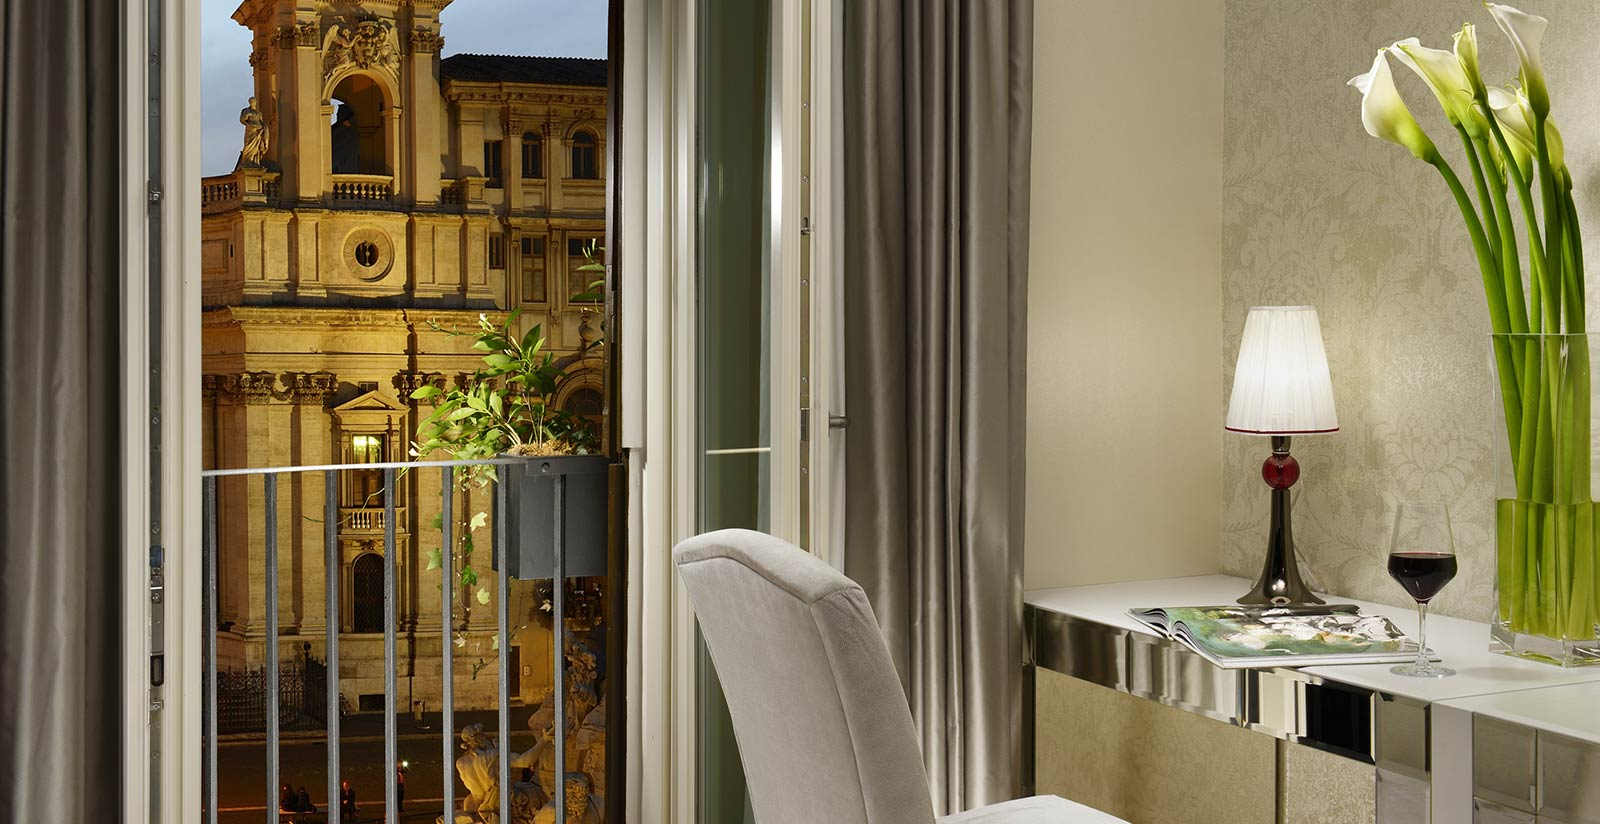 Lifestyle Suites Rome Hotel With Overlooking Rooms On